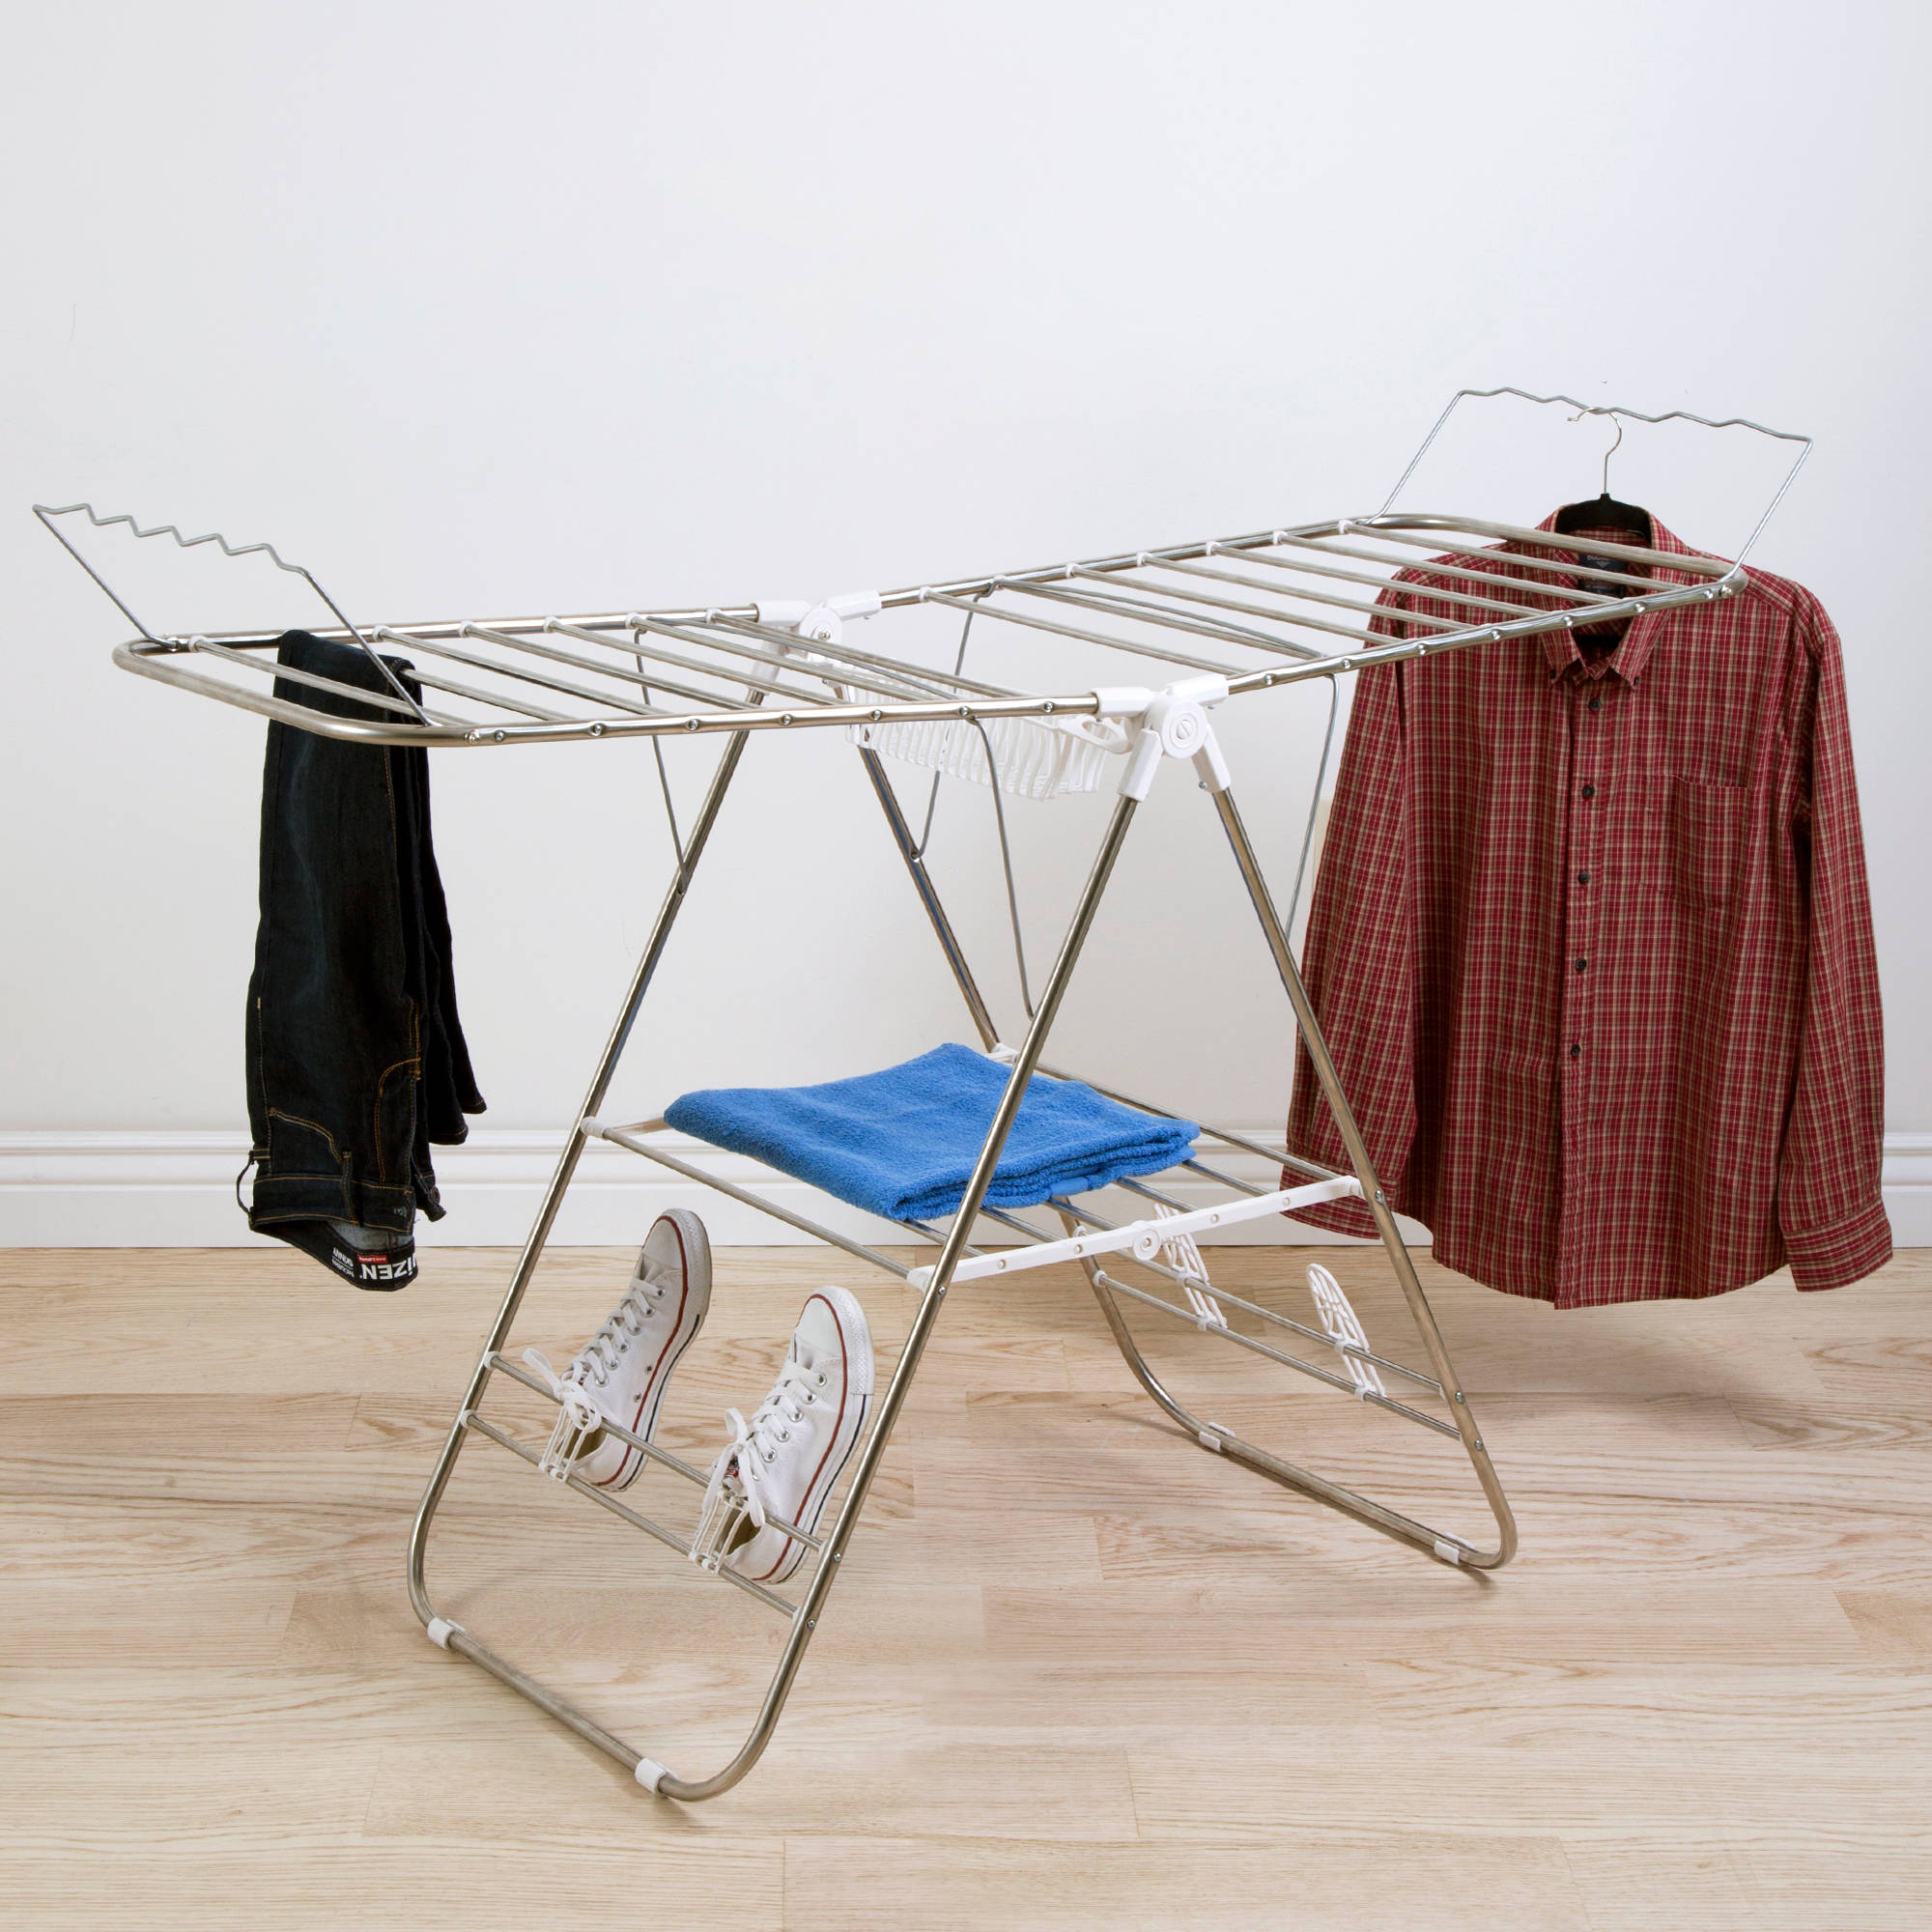 Everyday Home Sturdy Adjustable Gullwing Drying Rack with Shoe Horns